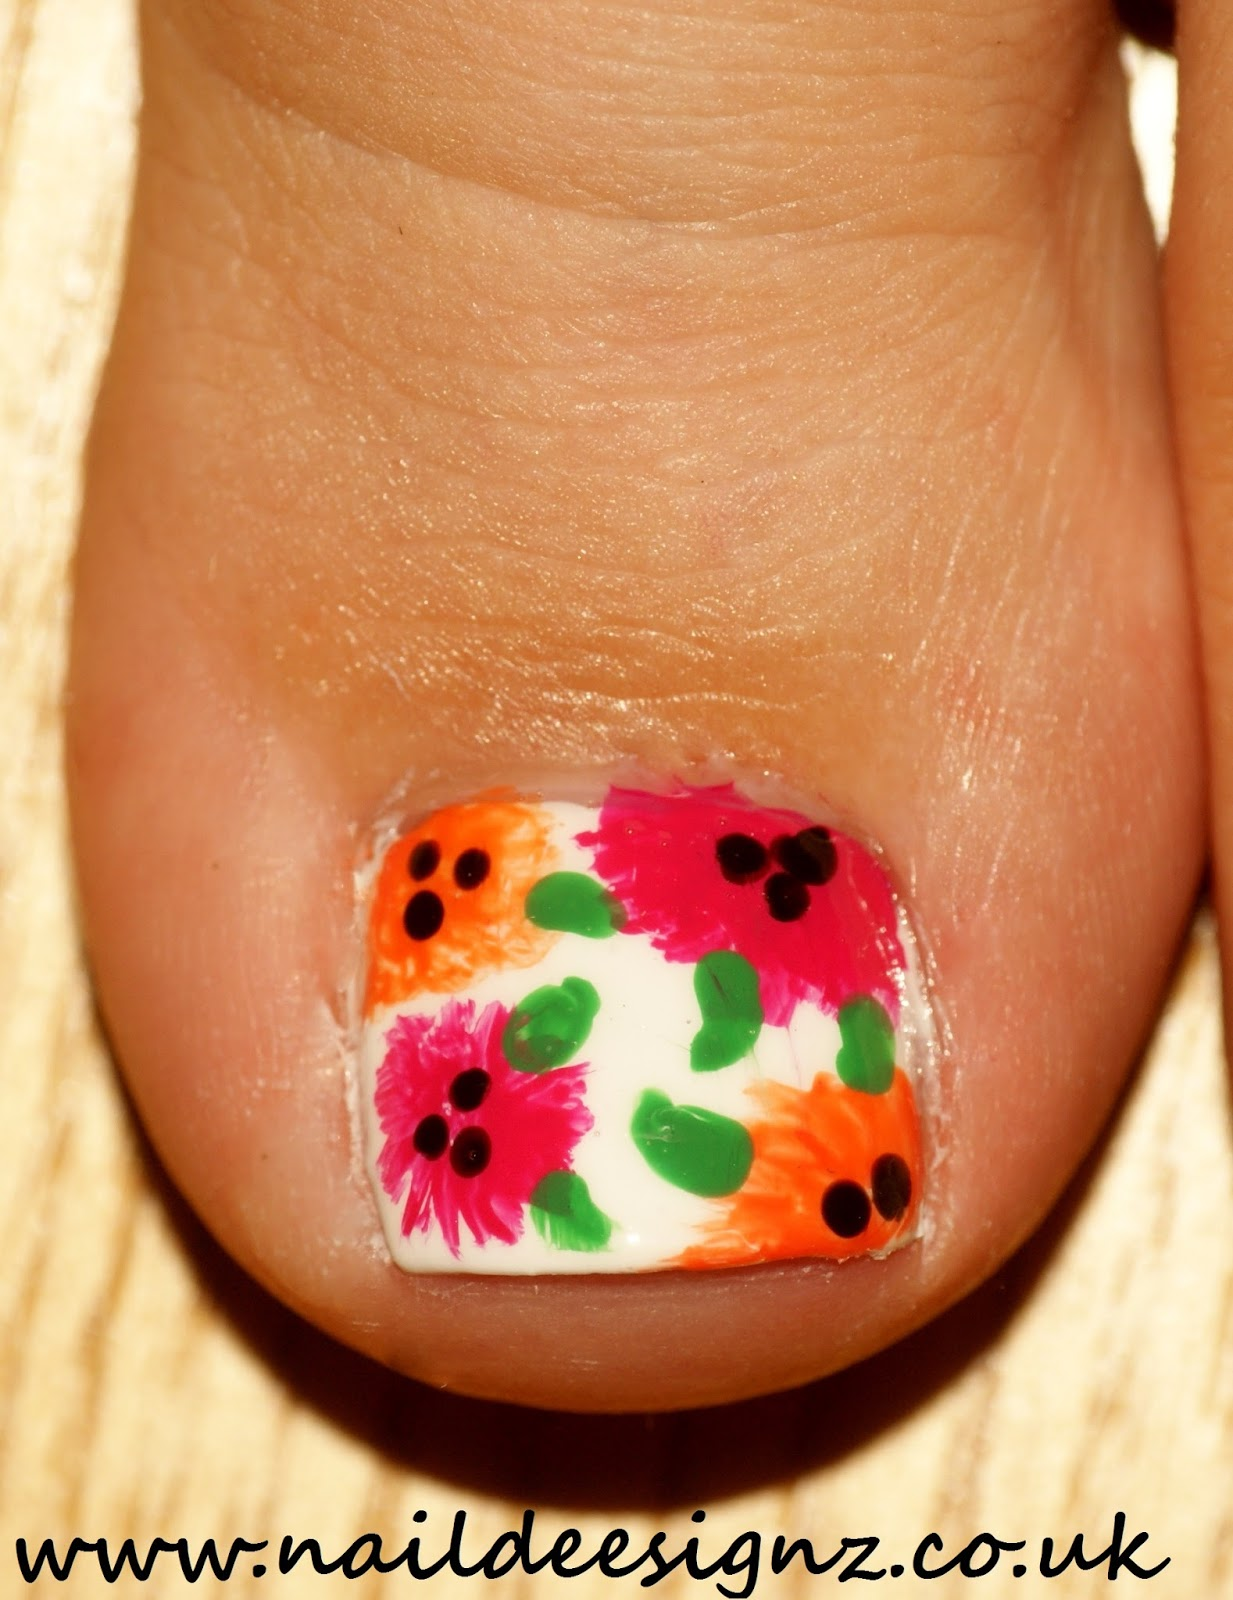 ... Nail Designs - Easy Nail Designs For Short Nails: Summer Flowers